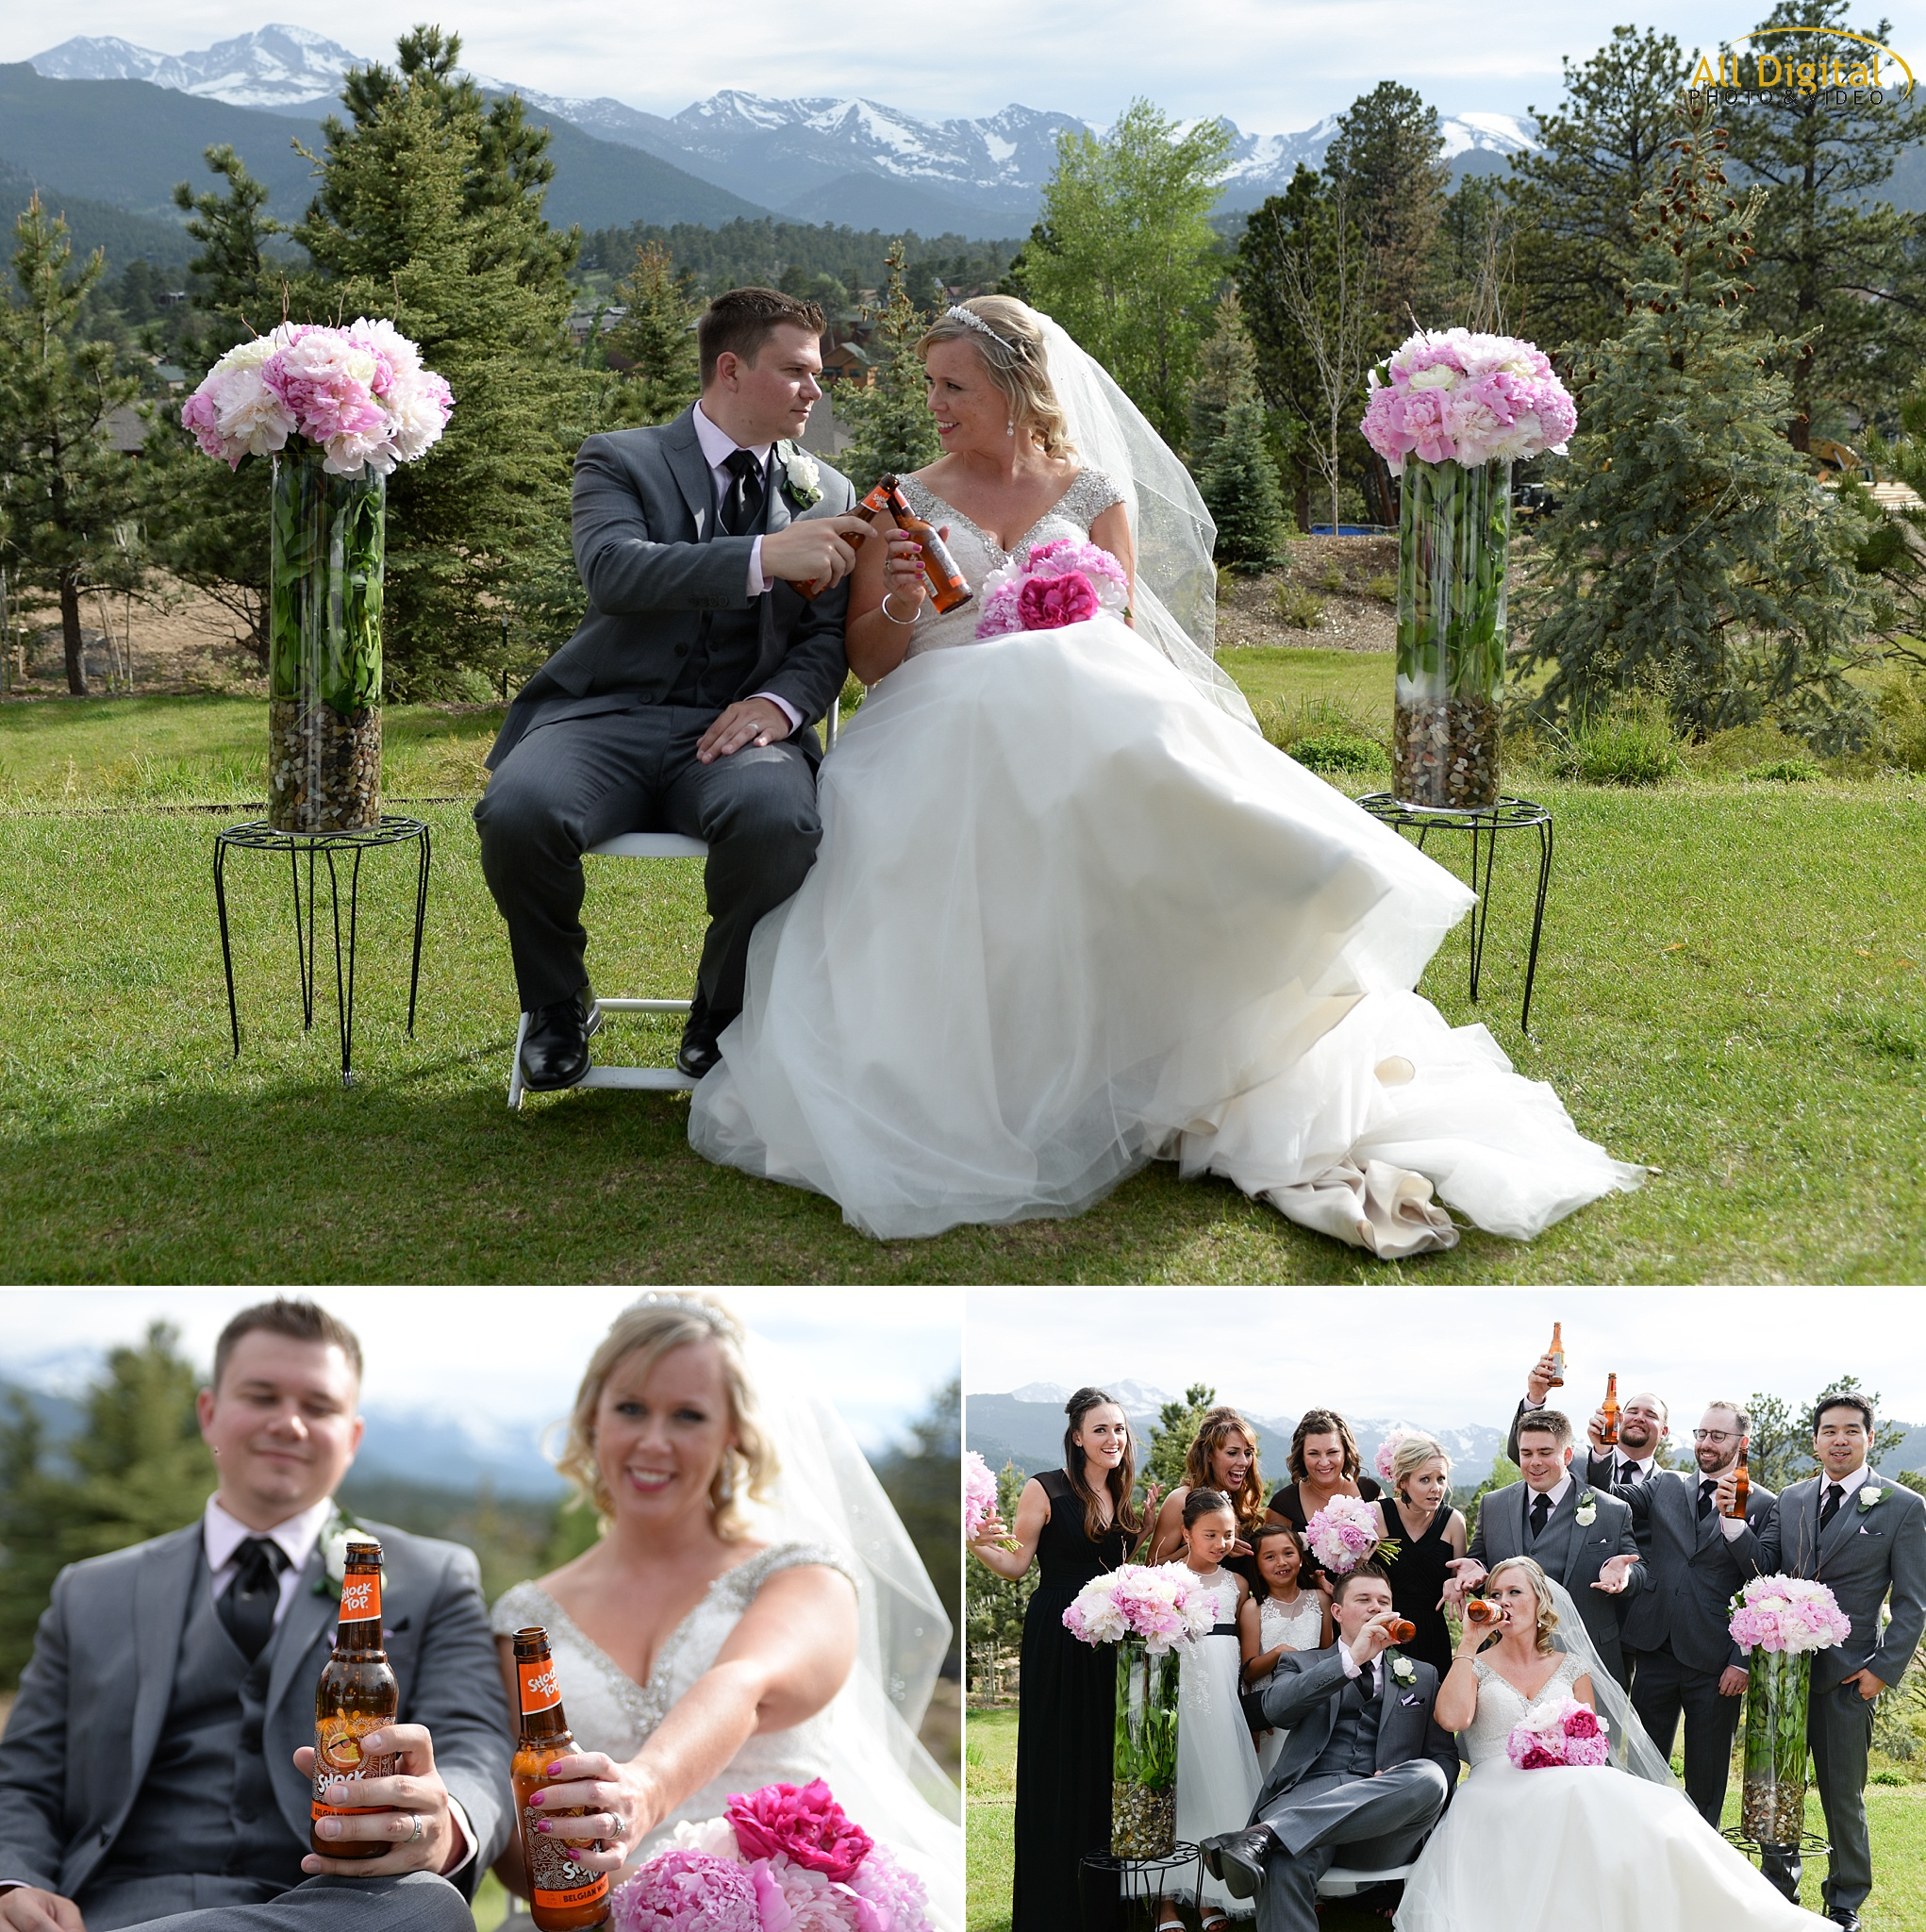 Alison & Brian enjoying a beer after their Wedding Ceremony at the Stanley Hotel in Estes Park, Colorado.